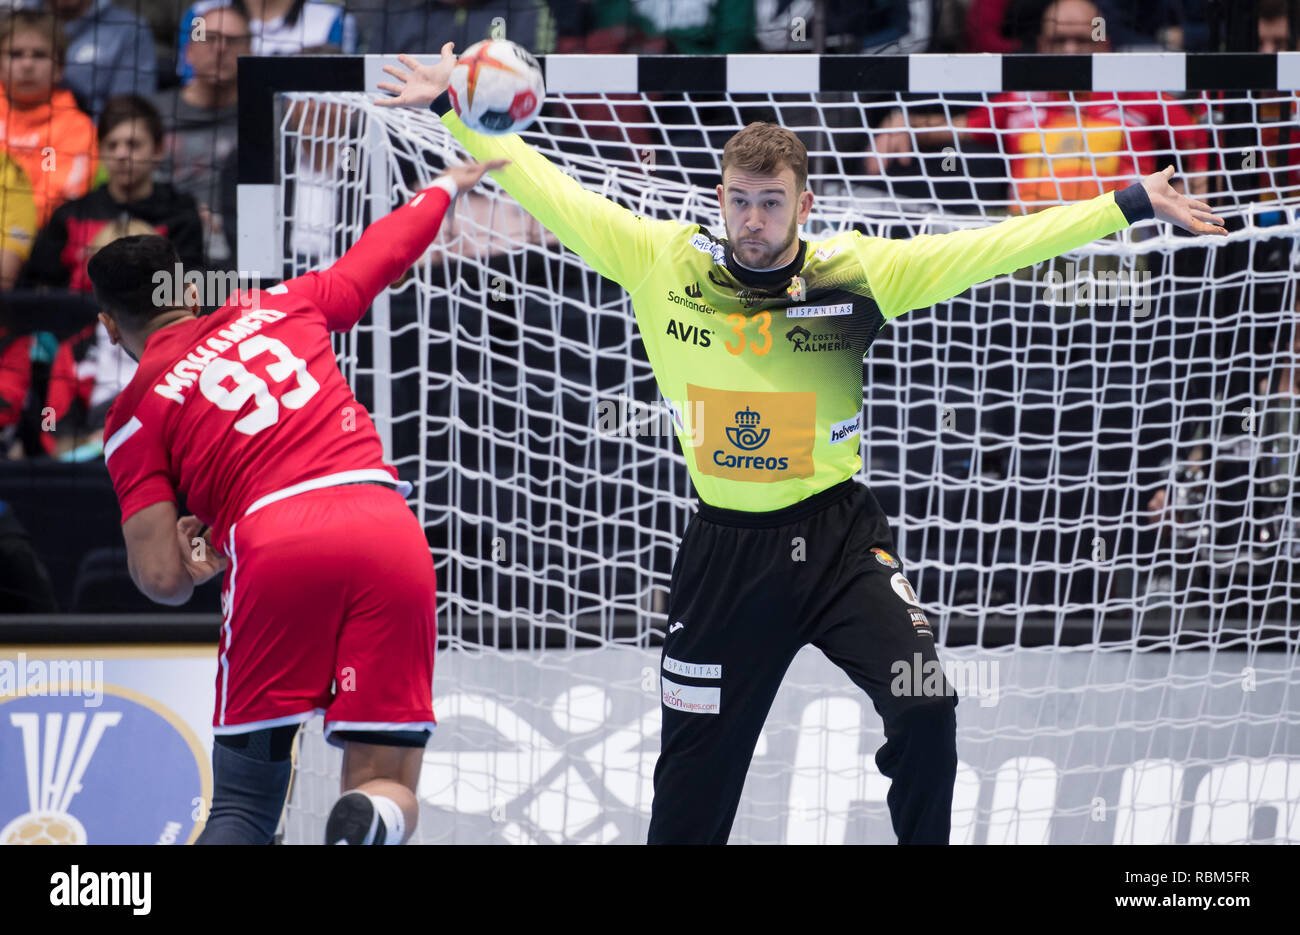 11 January 2019, Bavaria, München: Handball: World Championship, Bahrain - Spain, preliminary round, Group B, 1st matchday in the Olympic Hall. Mohamed Habib Hasan of Bahrain throws a seven-man at the gate of Gonzalo Perez De Vargas of Spain. Photo: Sven Hoppe/dpa Stock Photo